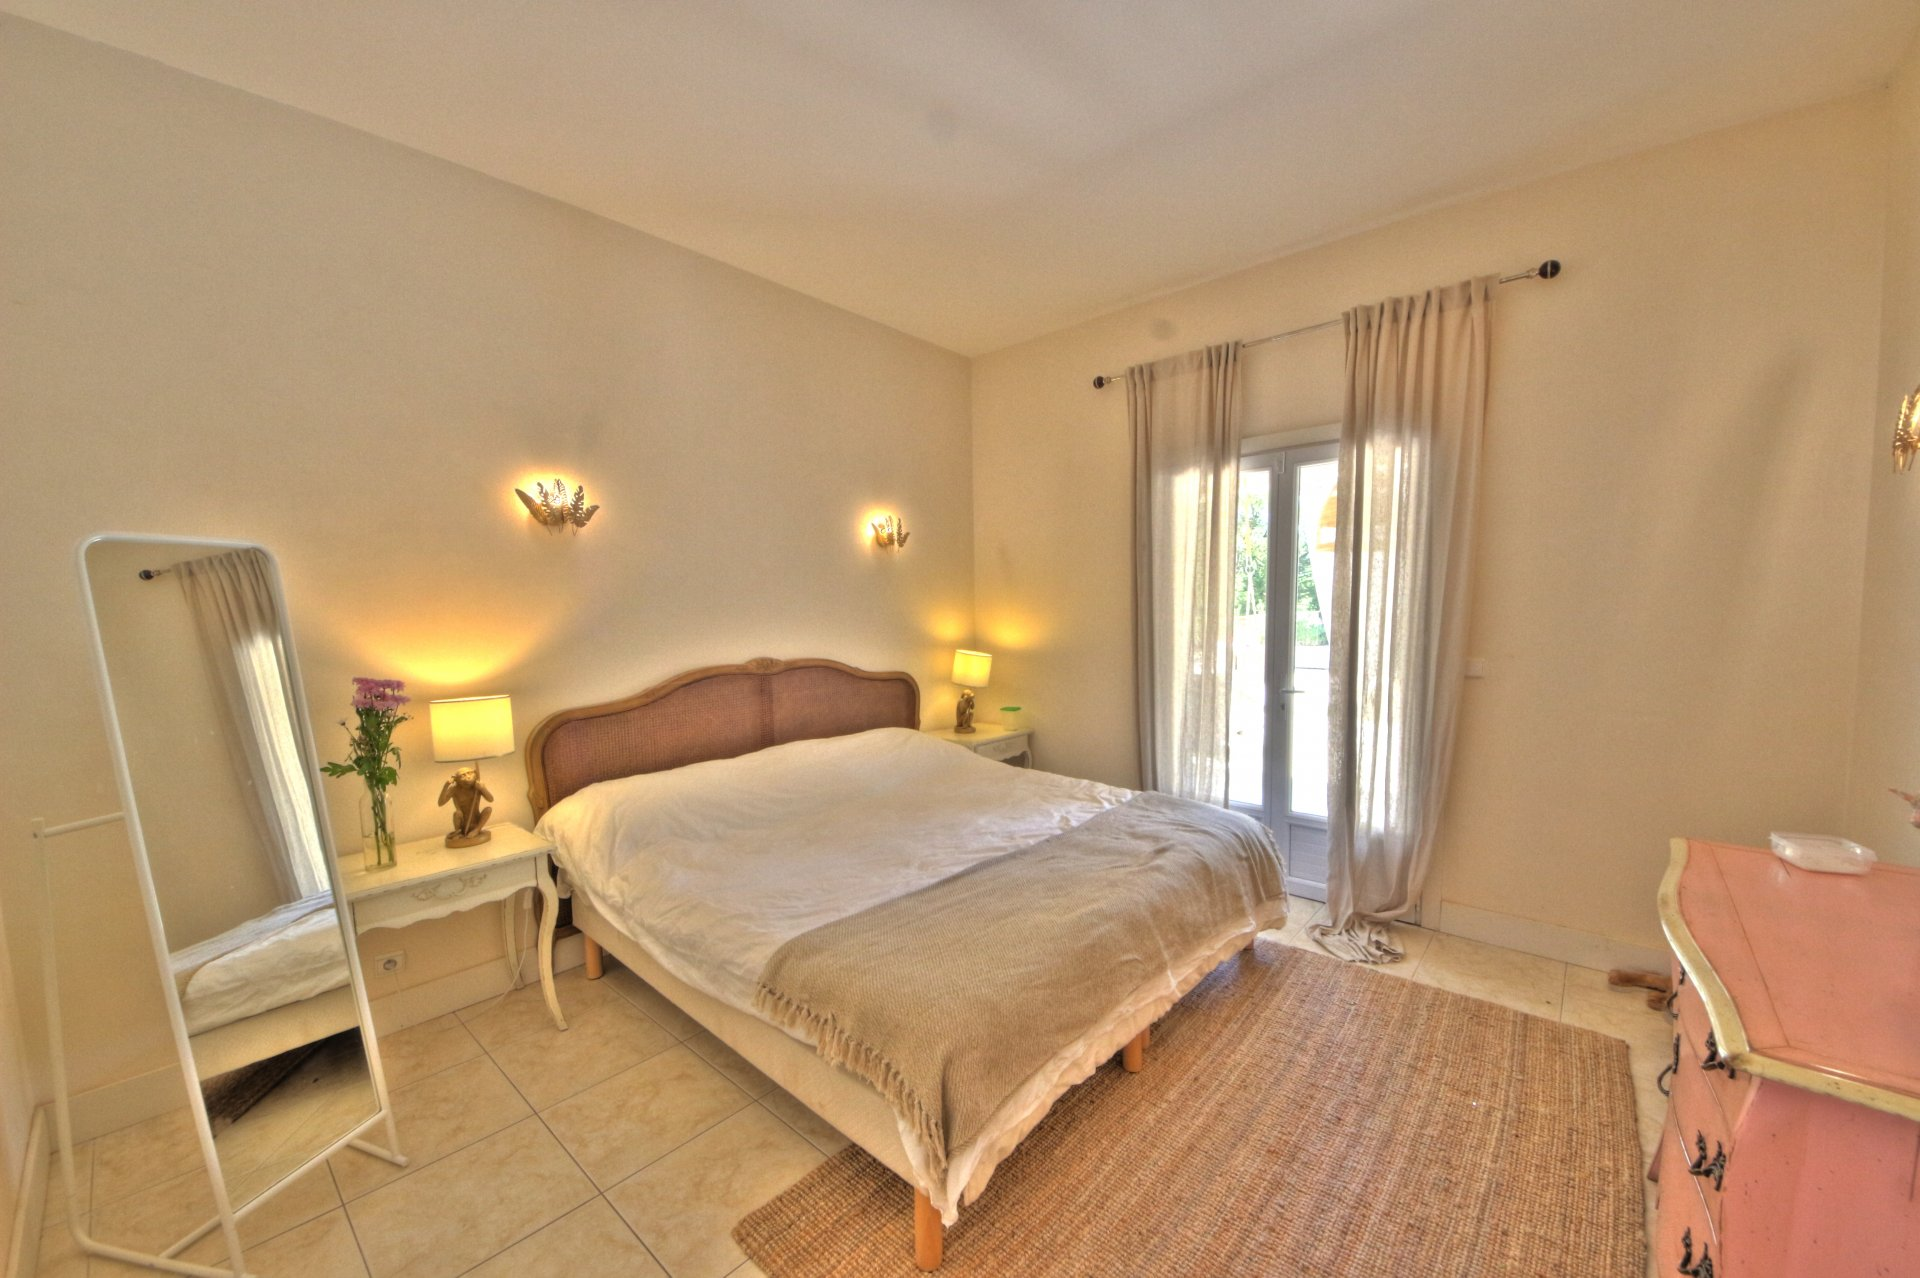 Spacious and bright room with exterior access